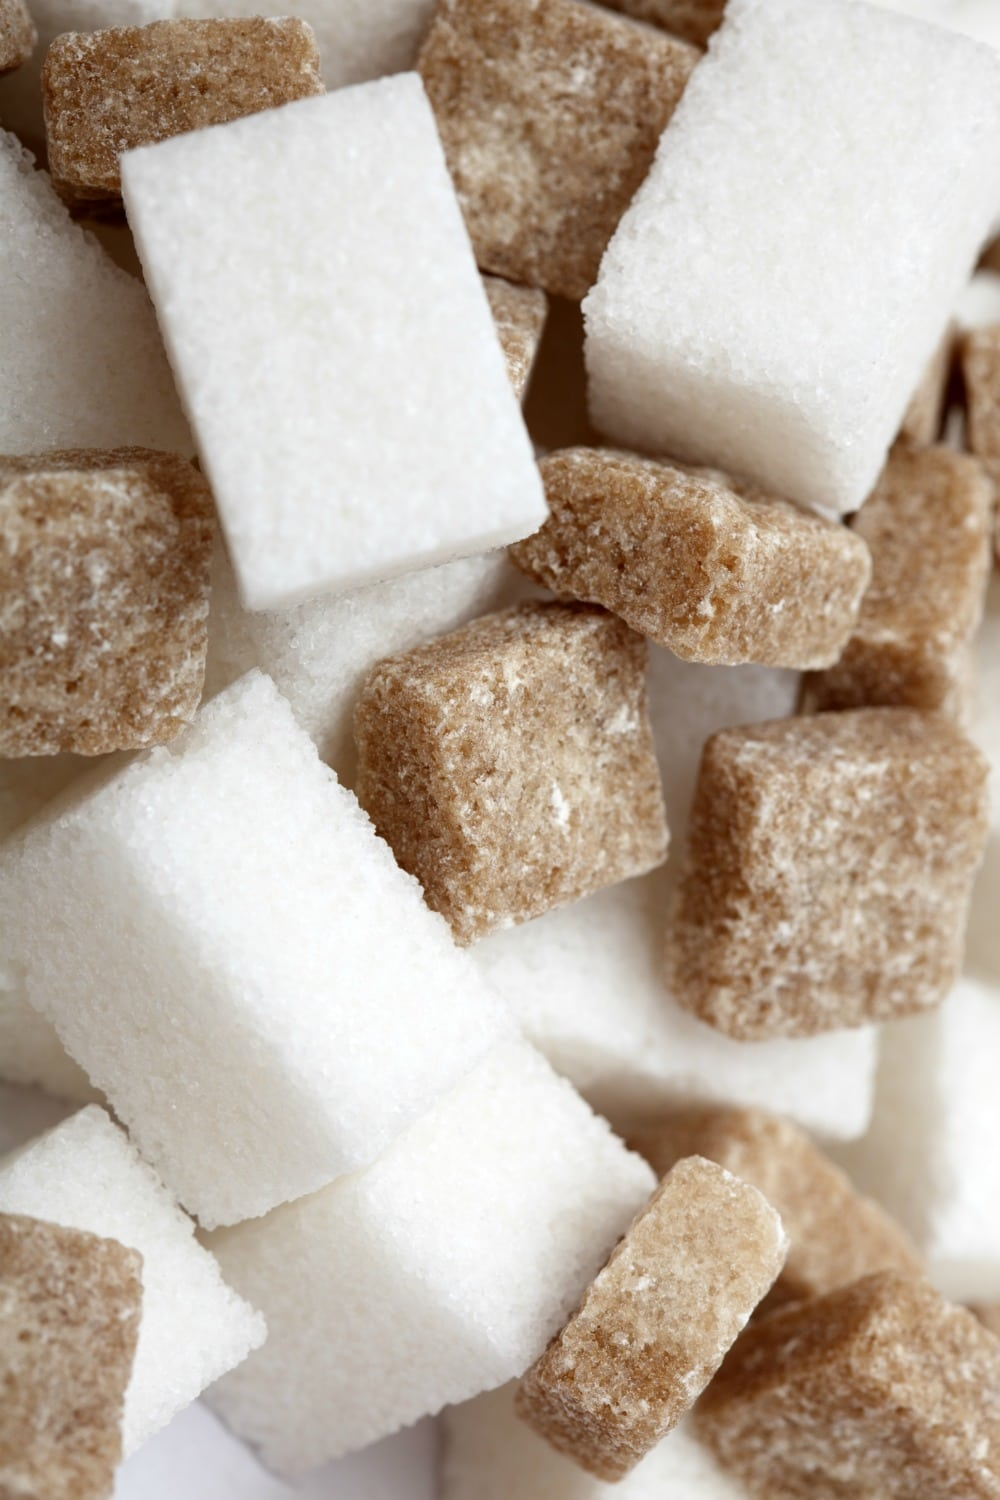 White and brown sugar cubes close-up.